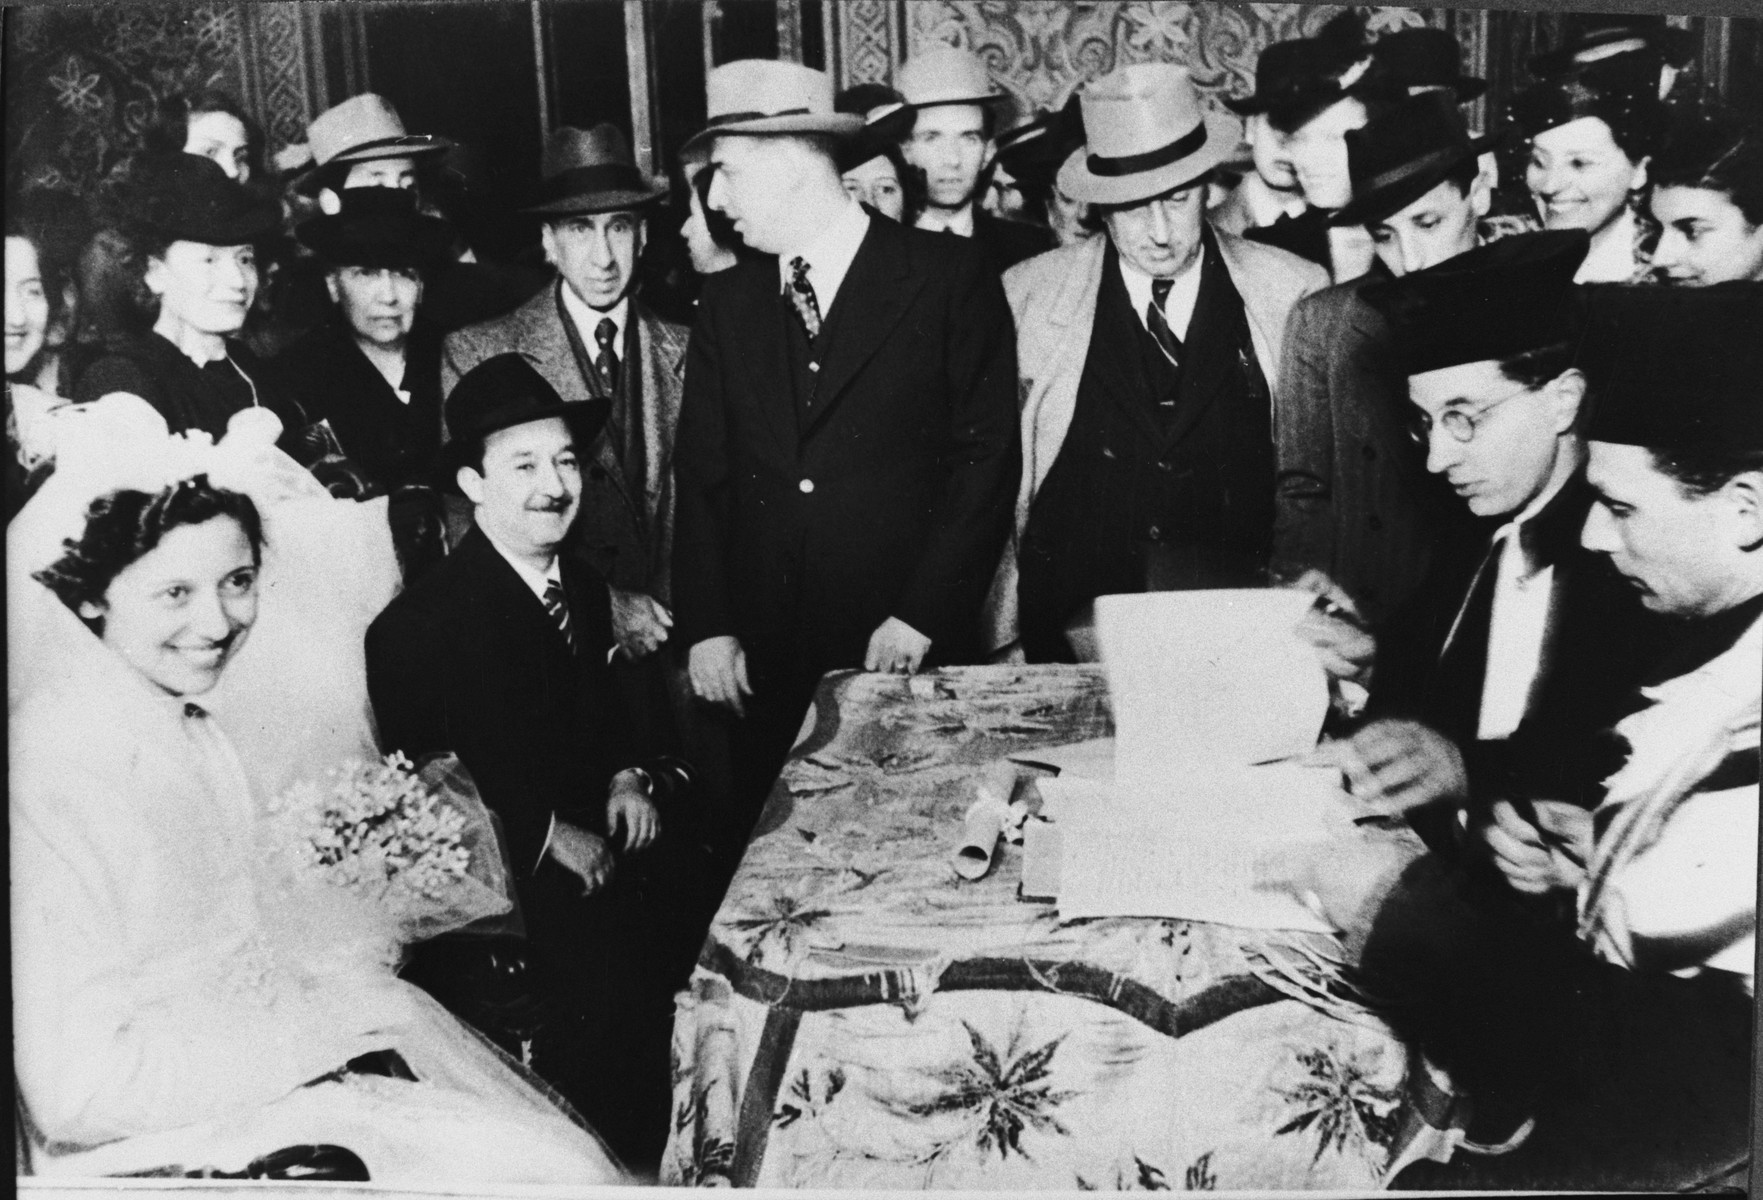 Rabbi Nathan Cassuto officiates at a wedding in Florence.  Also pictured is Rabbi Fernando Belgrado, later Chief Rabbi of Florence.